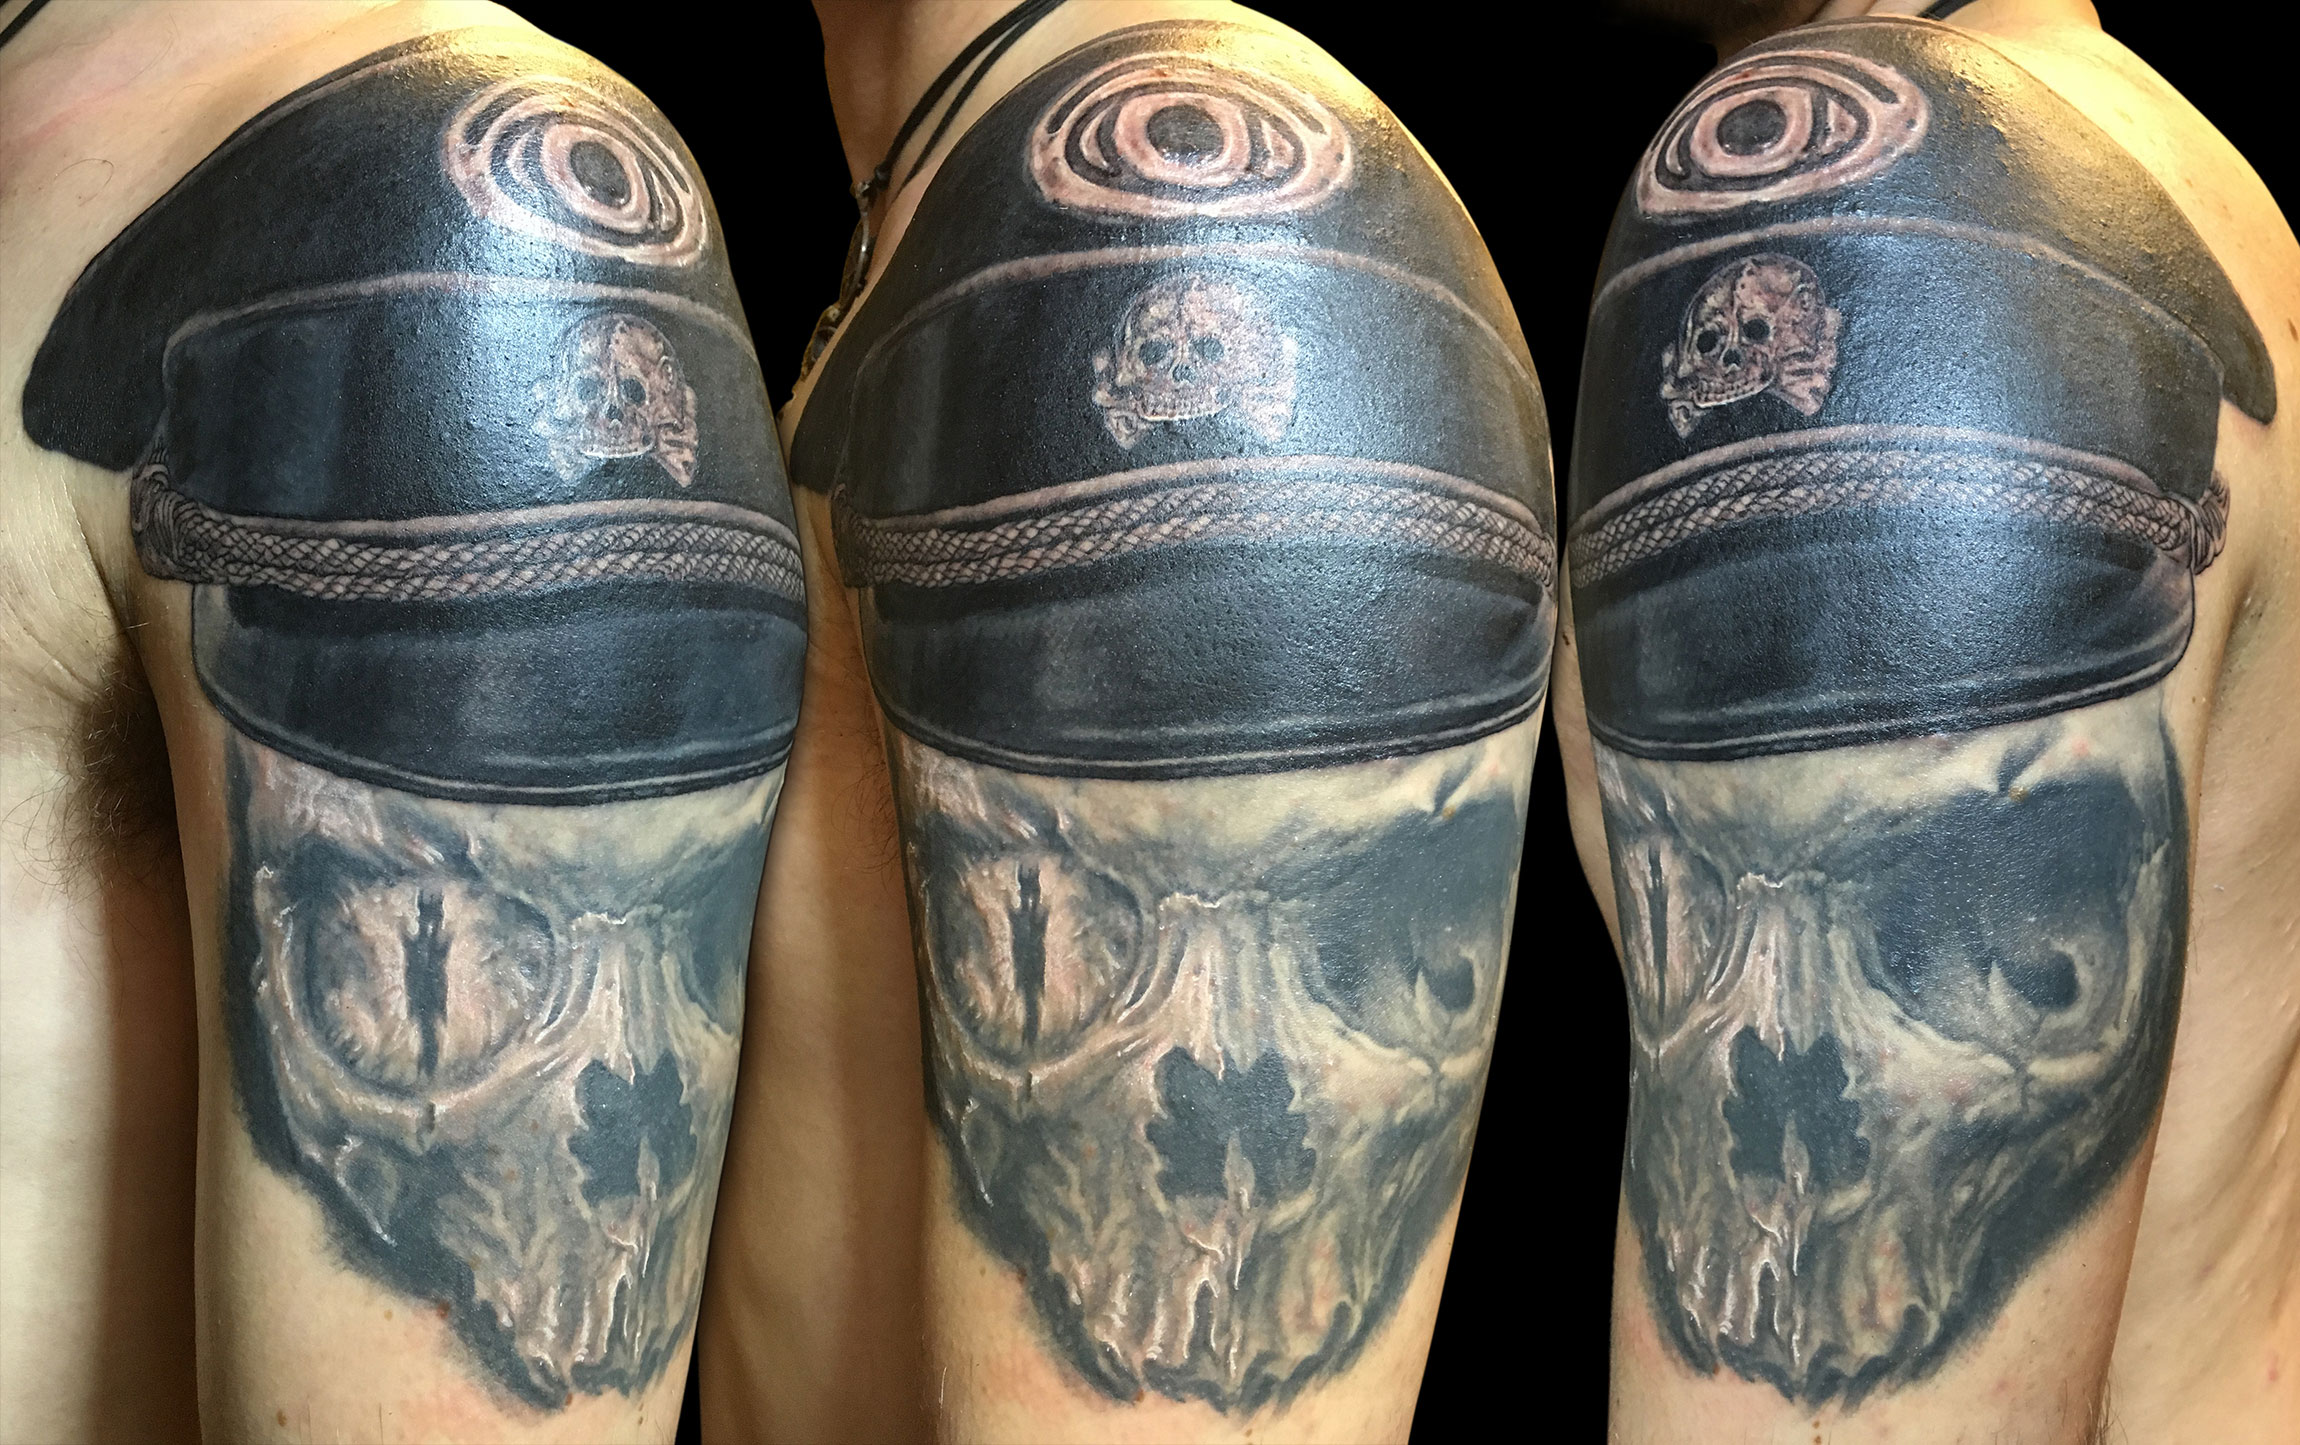 Black and Grey Evil Overlord Skull Tattoo with All Seeing Eye of Sauron,  cap of sleeve in progress